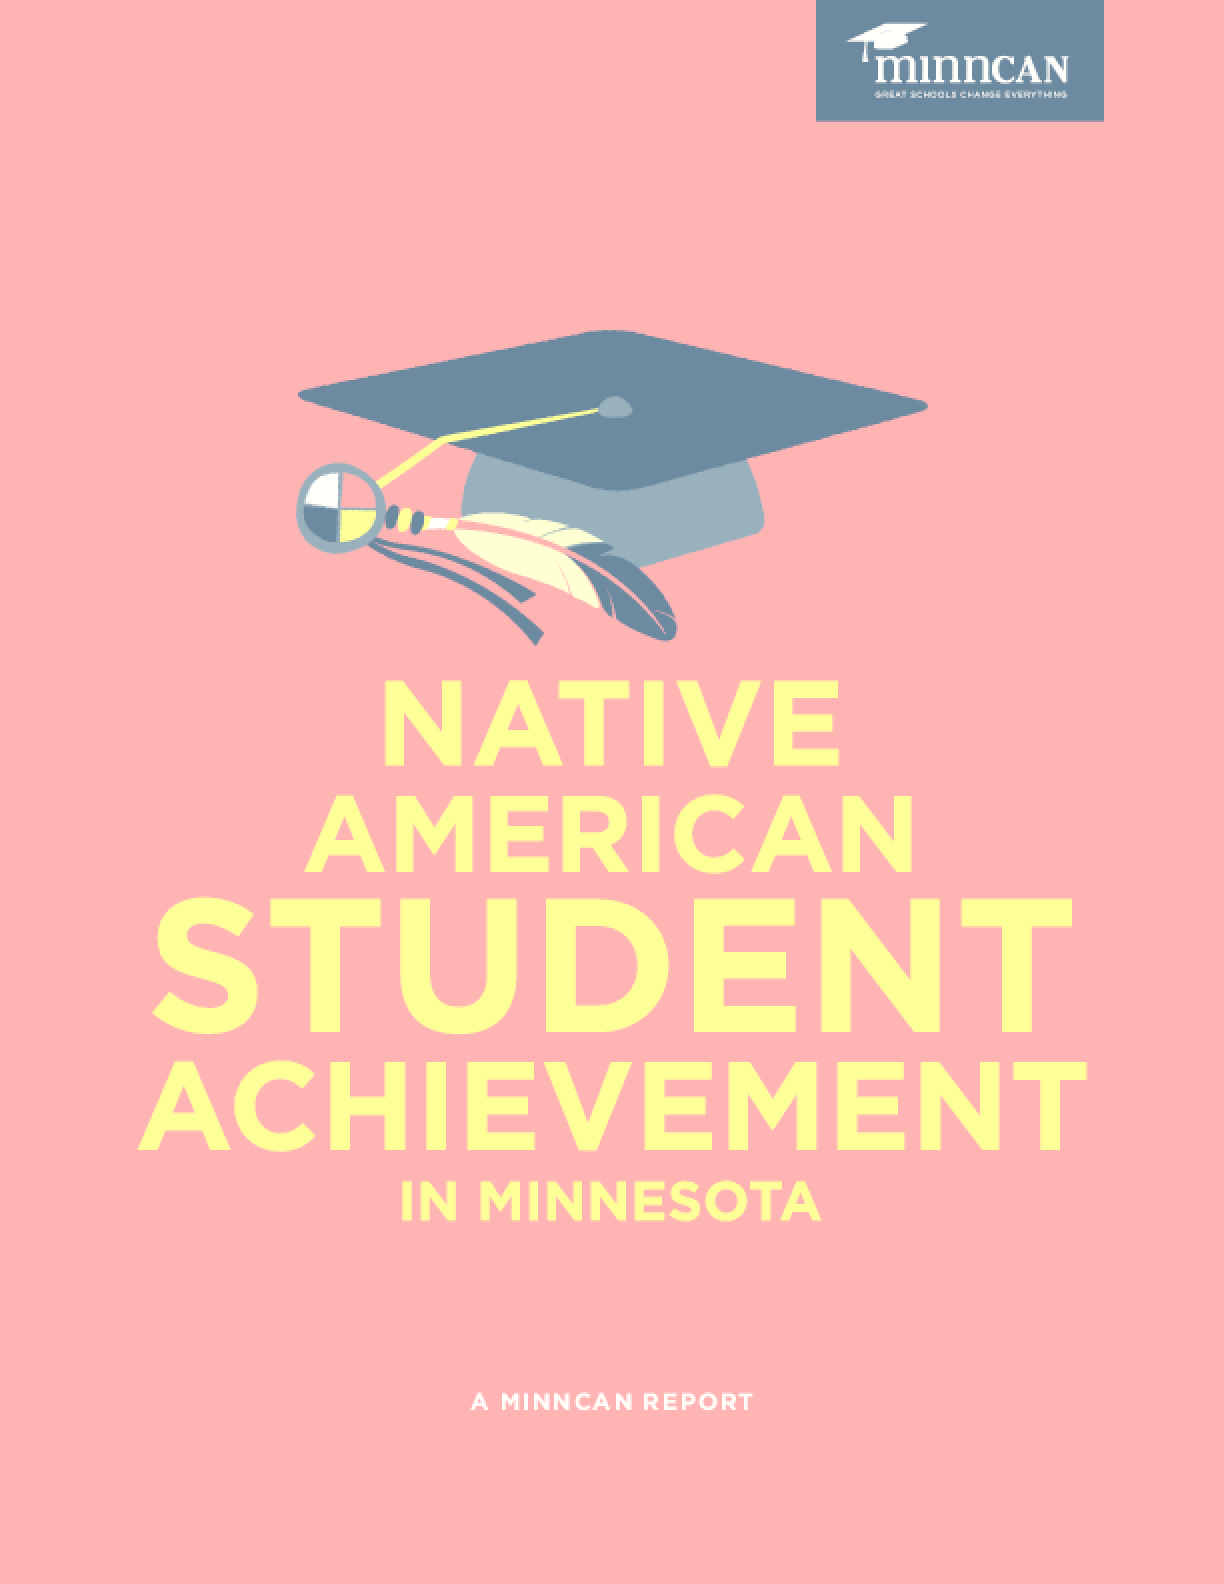 Native American Student Achievement in Minnesota